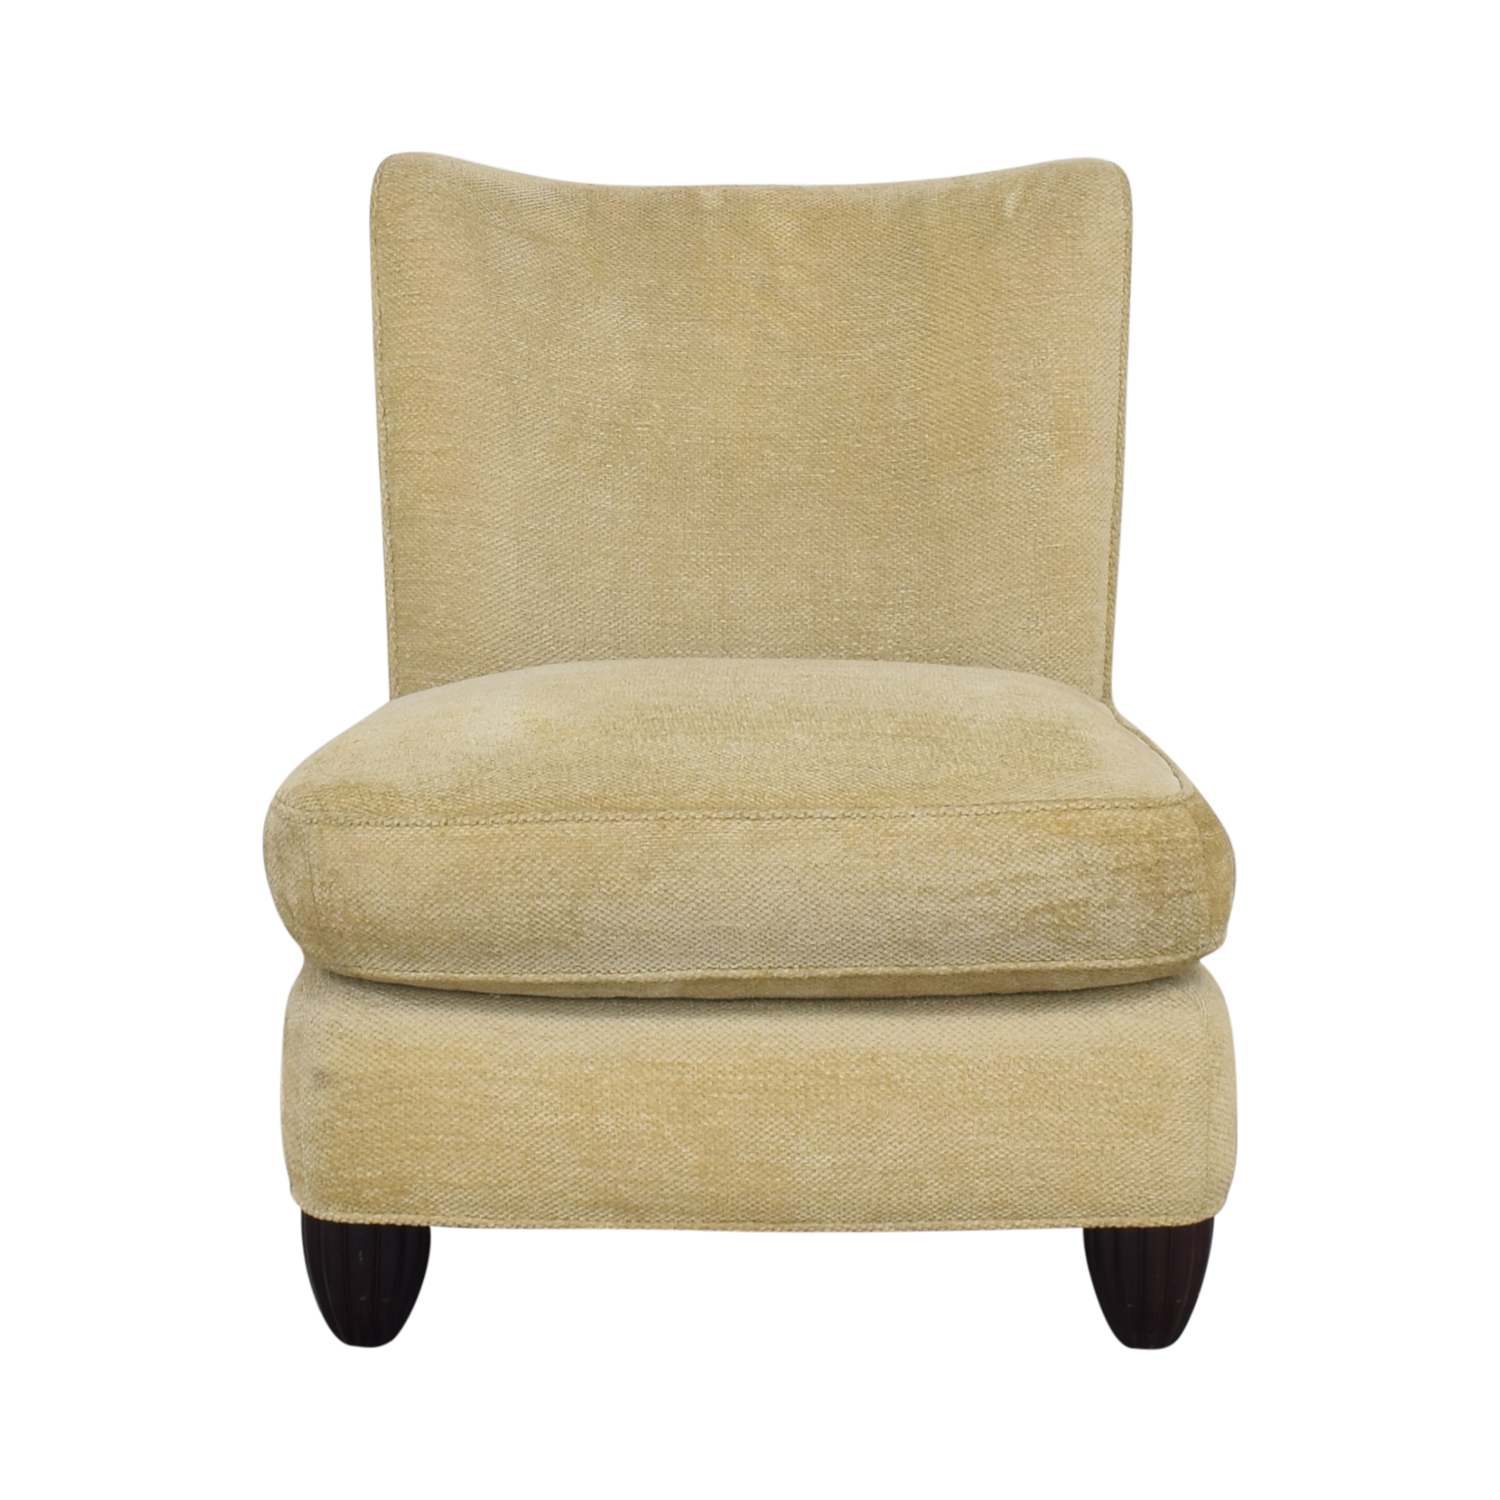 Baker Furniture Baker Furniture Barbara Barry Slipper Chair